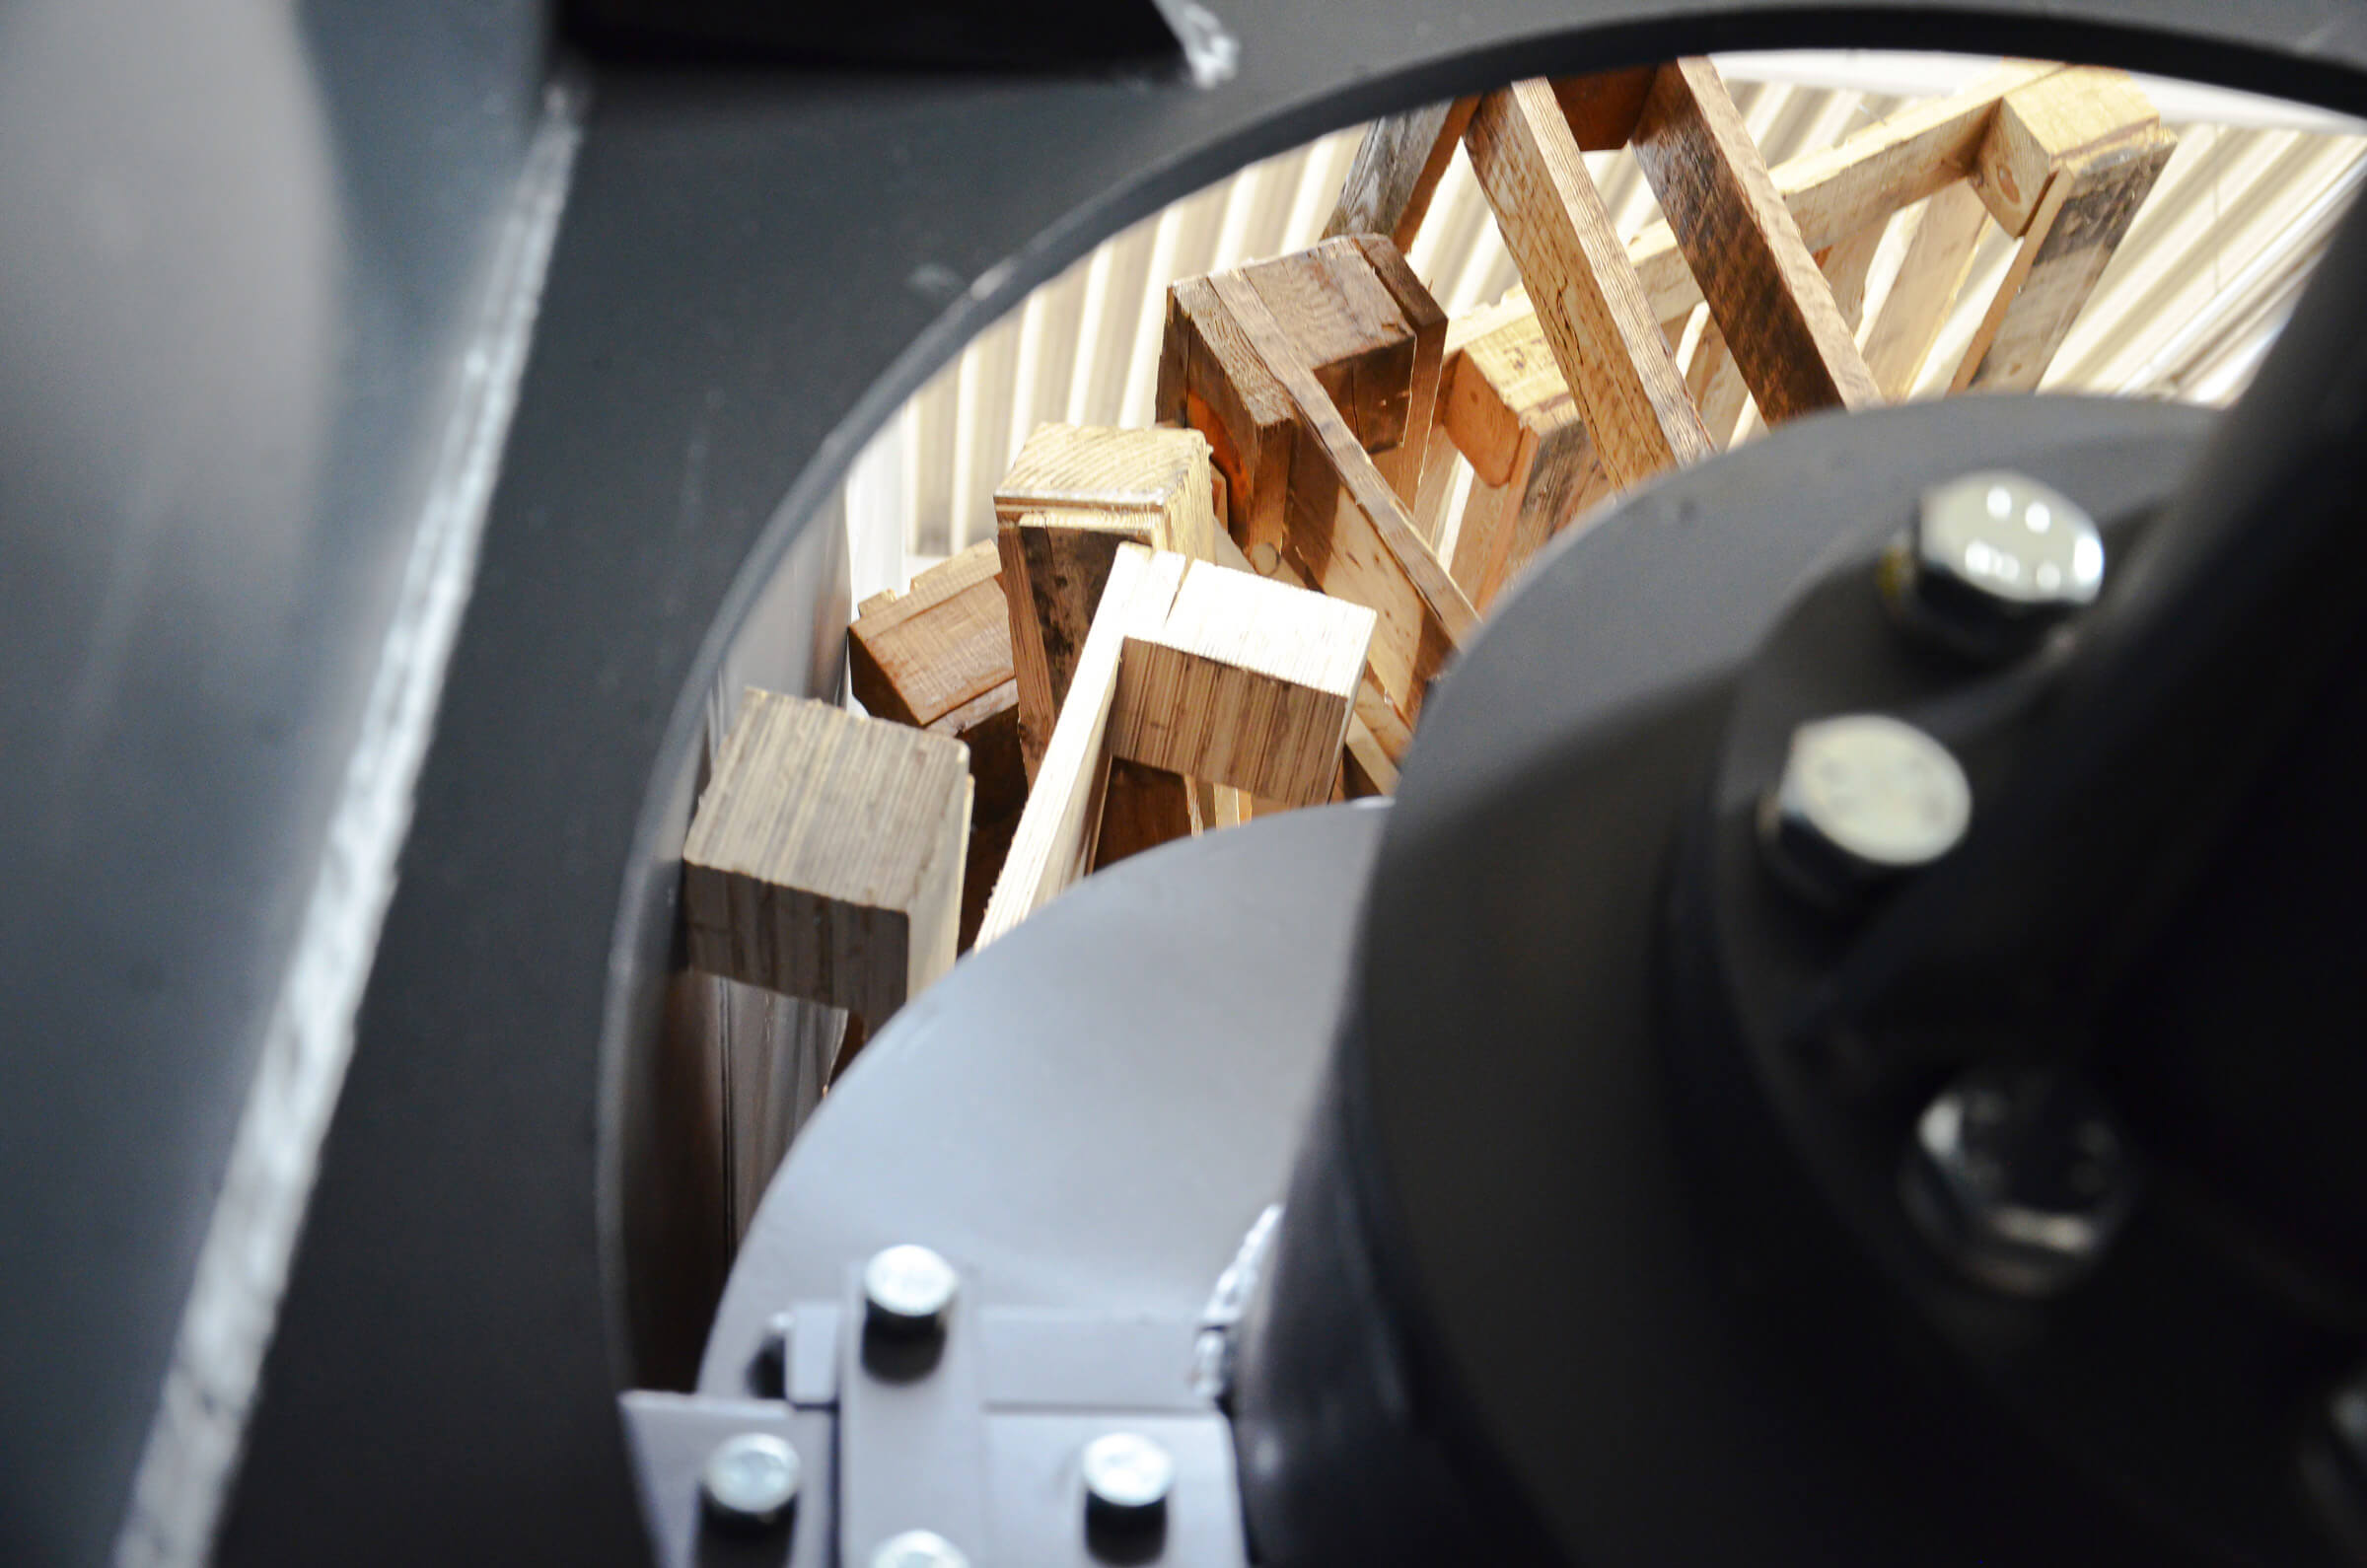 Interior view of the WEIMA Woodwolf